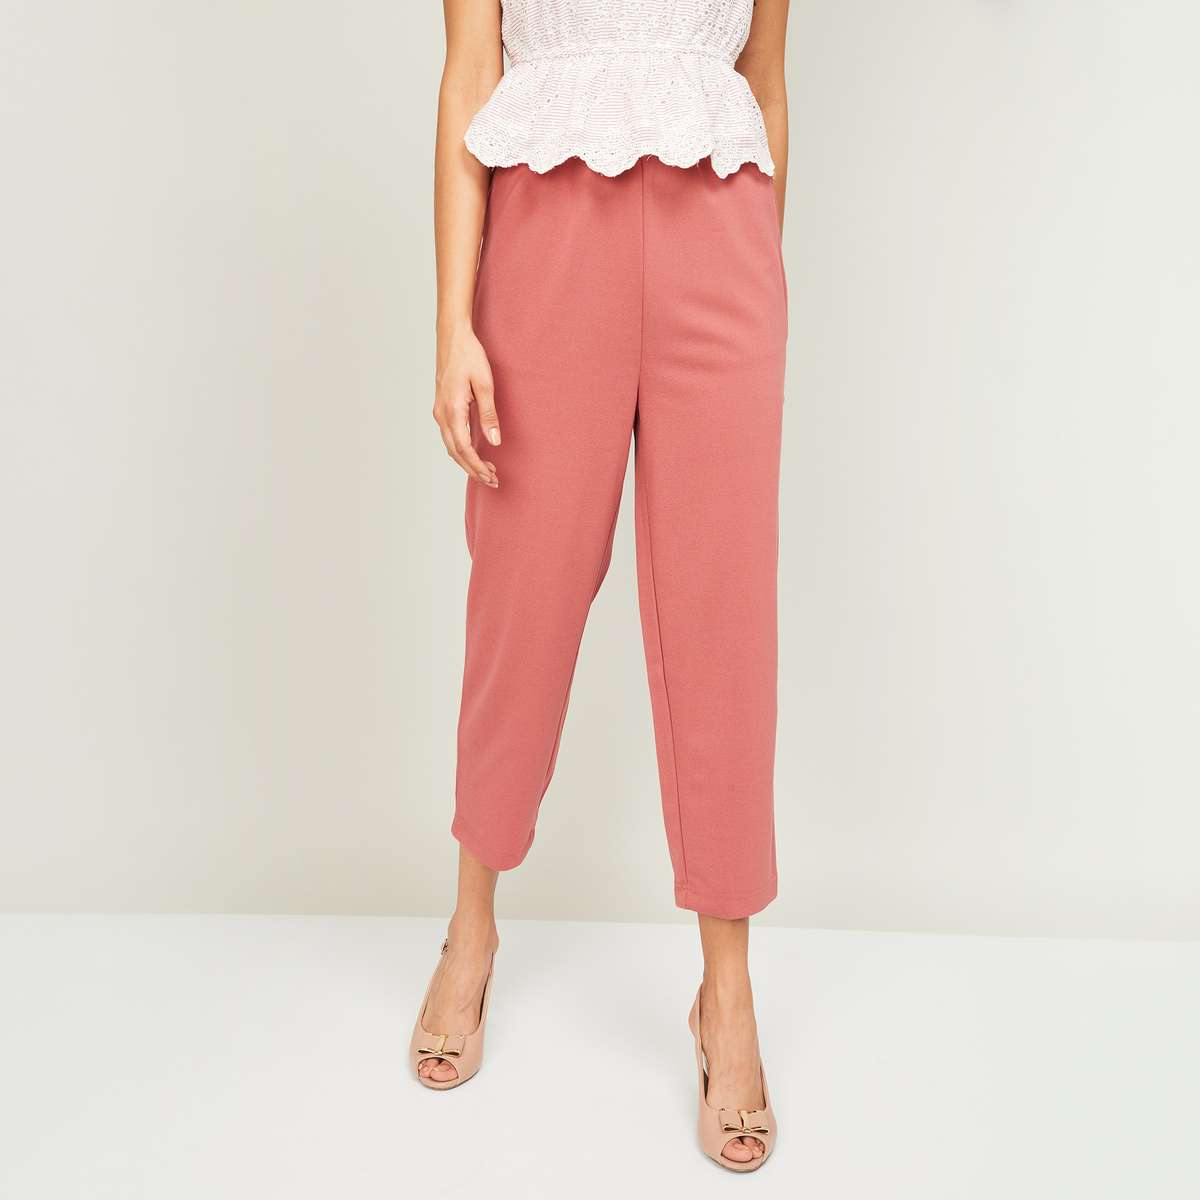 5.GINGER Women Solid Knit Elasticated Pants